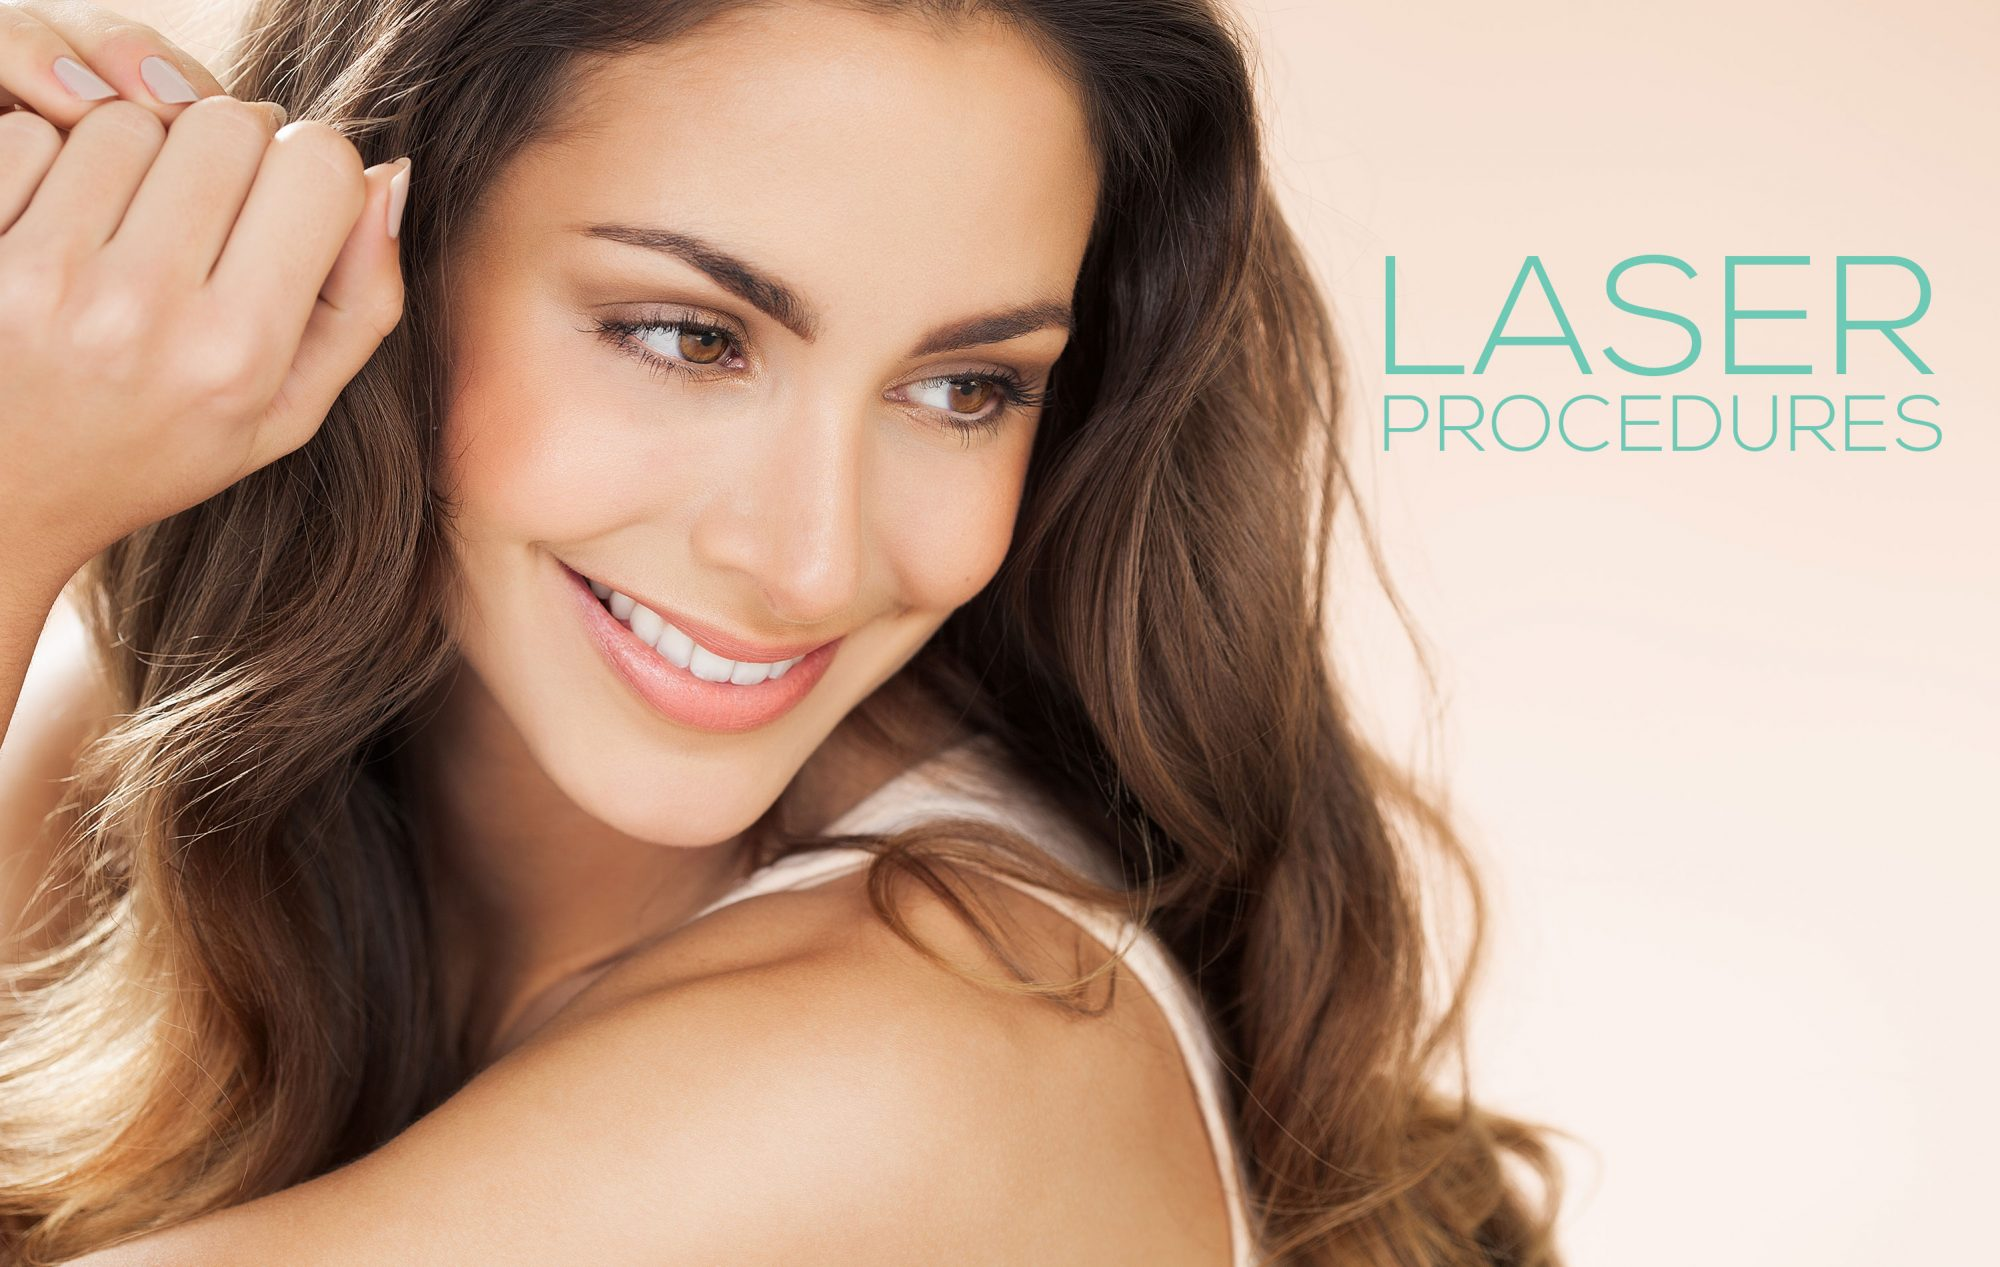 Top Plastic Surgeon, Timothy Leung M.D., Specializing in Facelifts